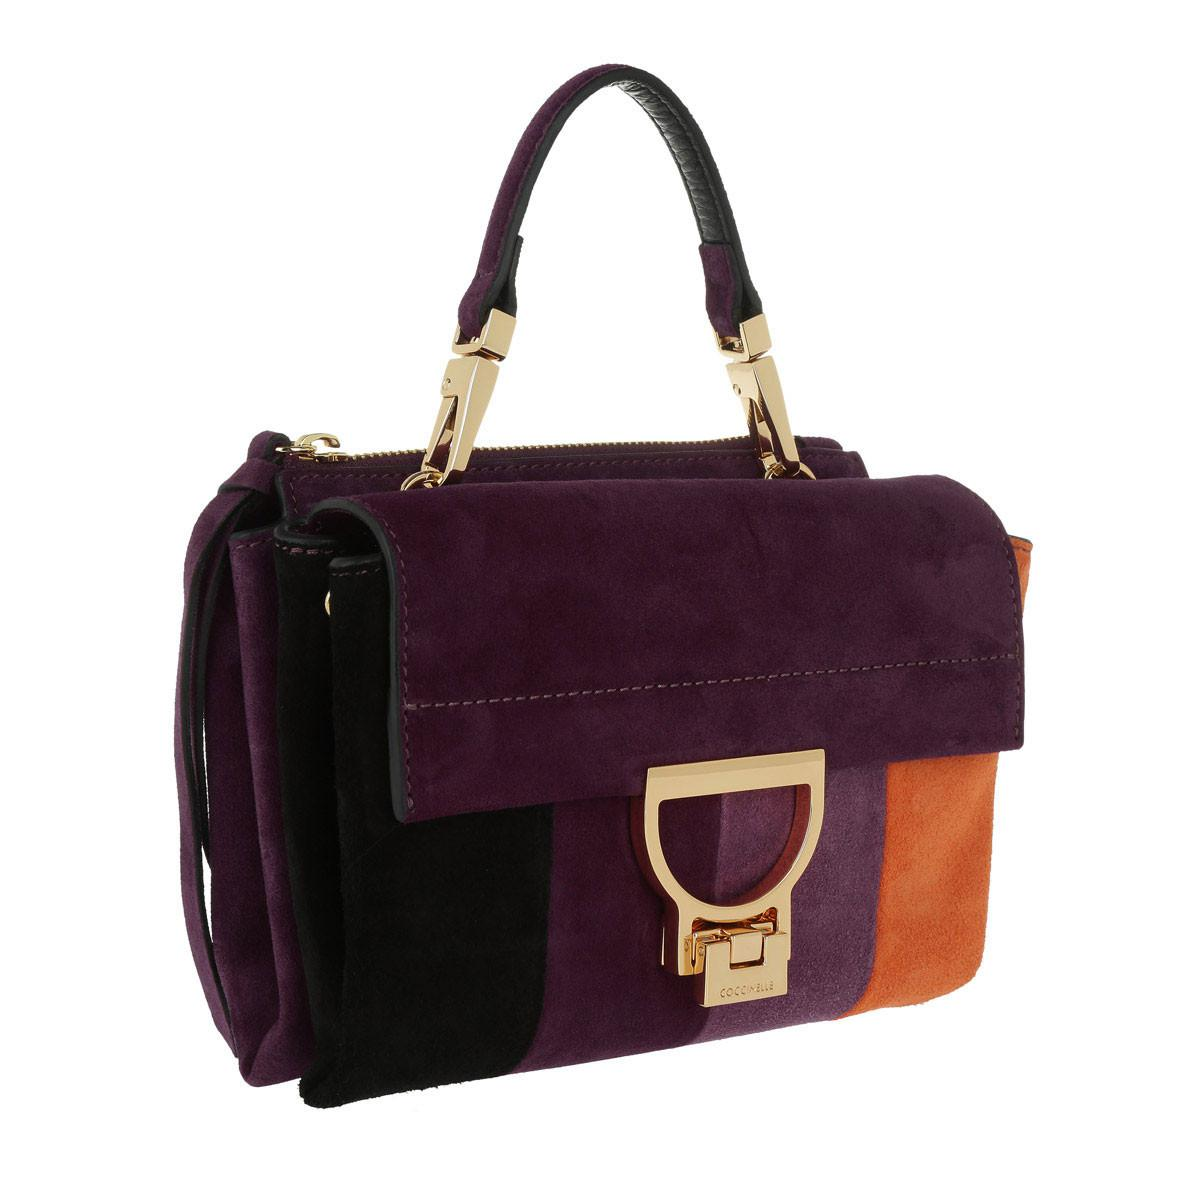 Coccinelle Suede Arlettis Stripes Patch Crossbody Bag Multicolor in Purple